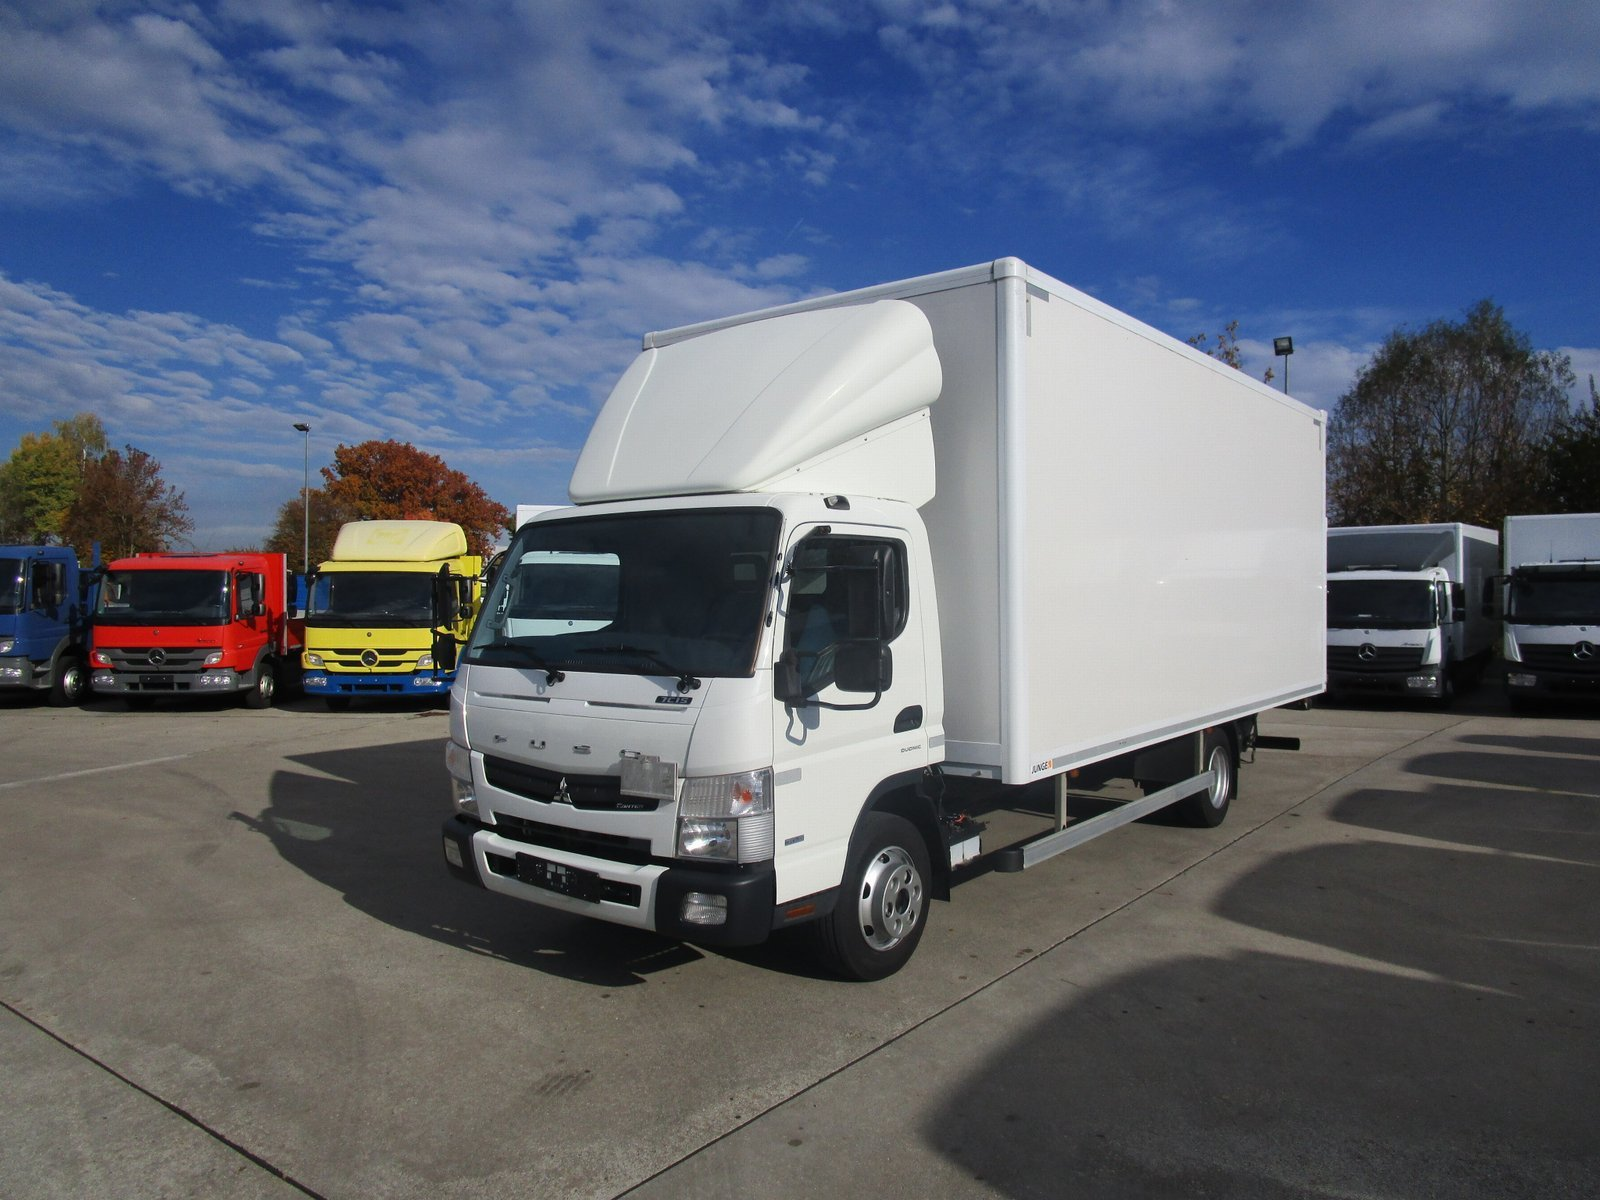 FUSO Canter 7 C 15 Koffer 6,1 m LBW 1 to. Klima